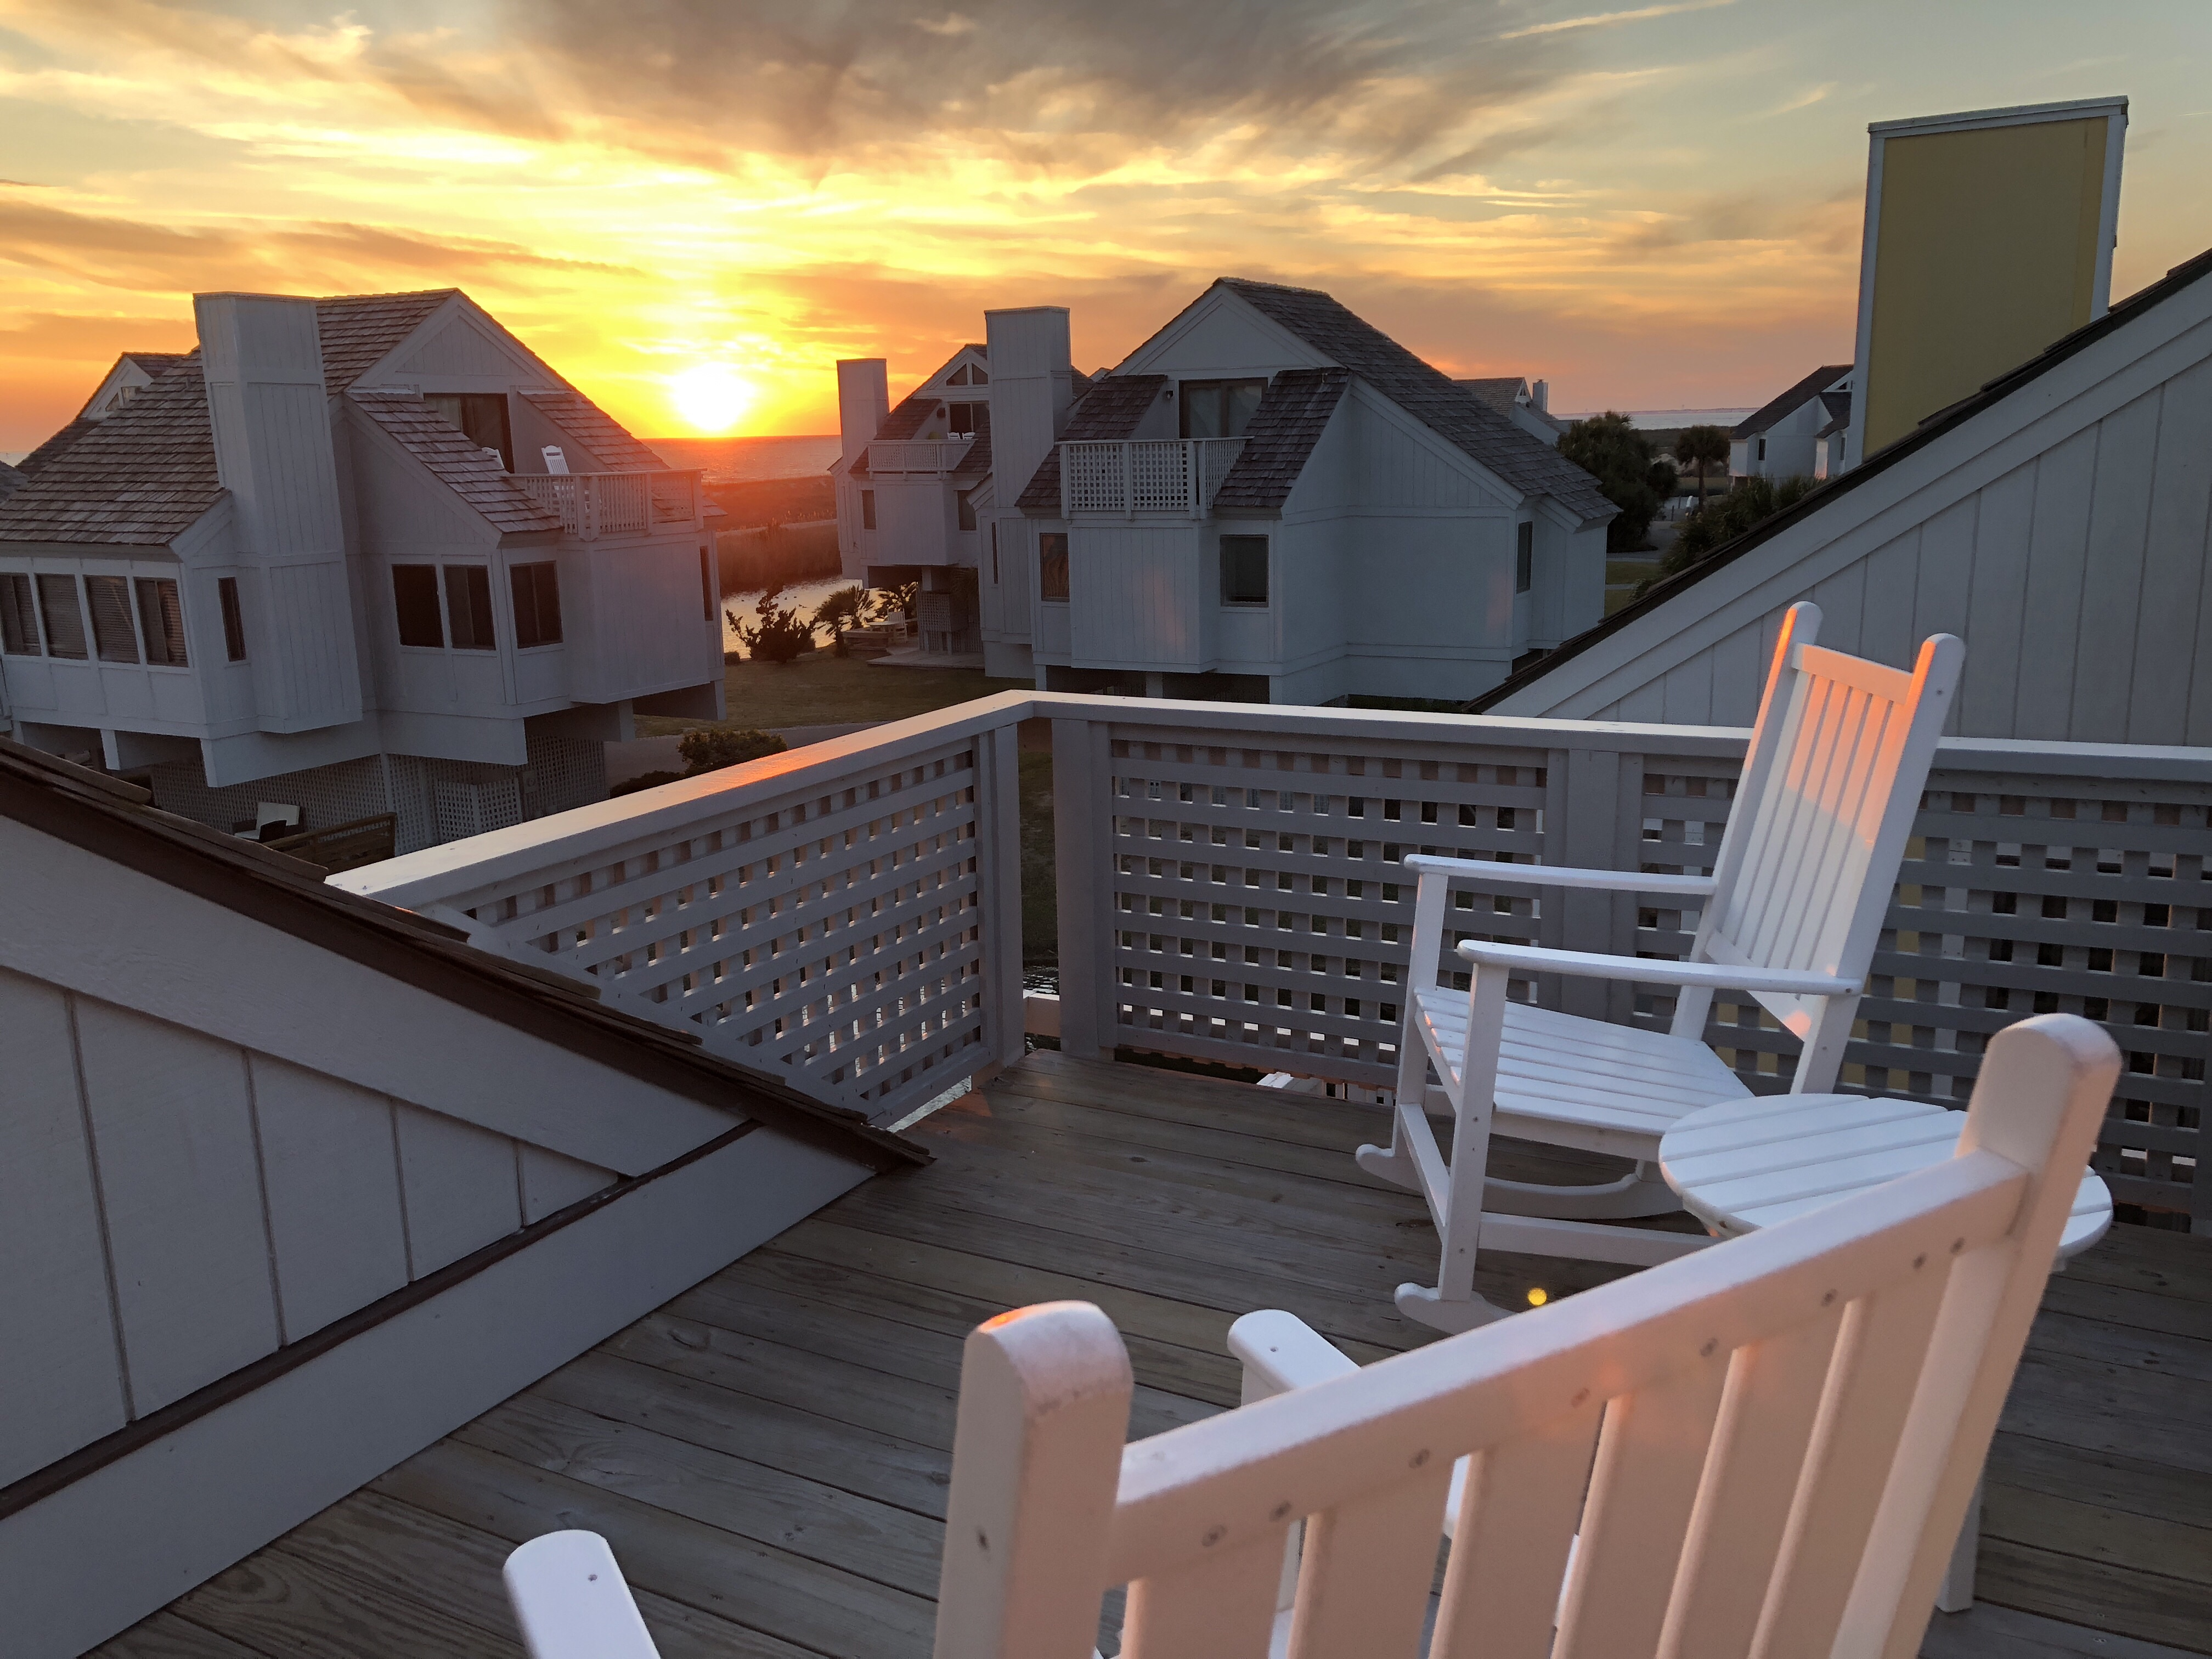 Bald Head Island Family Vacation Best Vacation Rental House - Why we love this east coast treasure and our favorite beach house on HomeAway via Misty Nelson, mom blogger, family travel blog review of NC vacation destinations